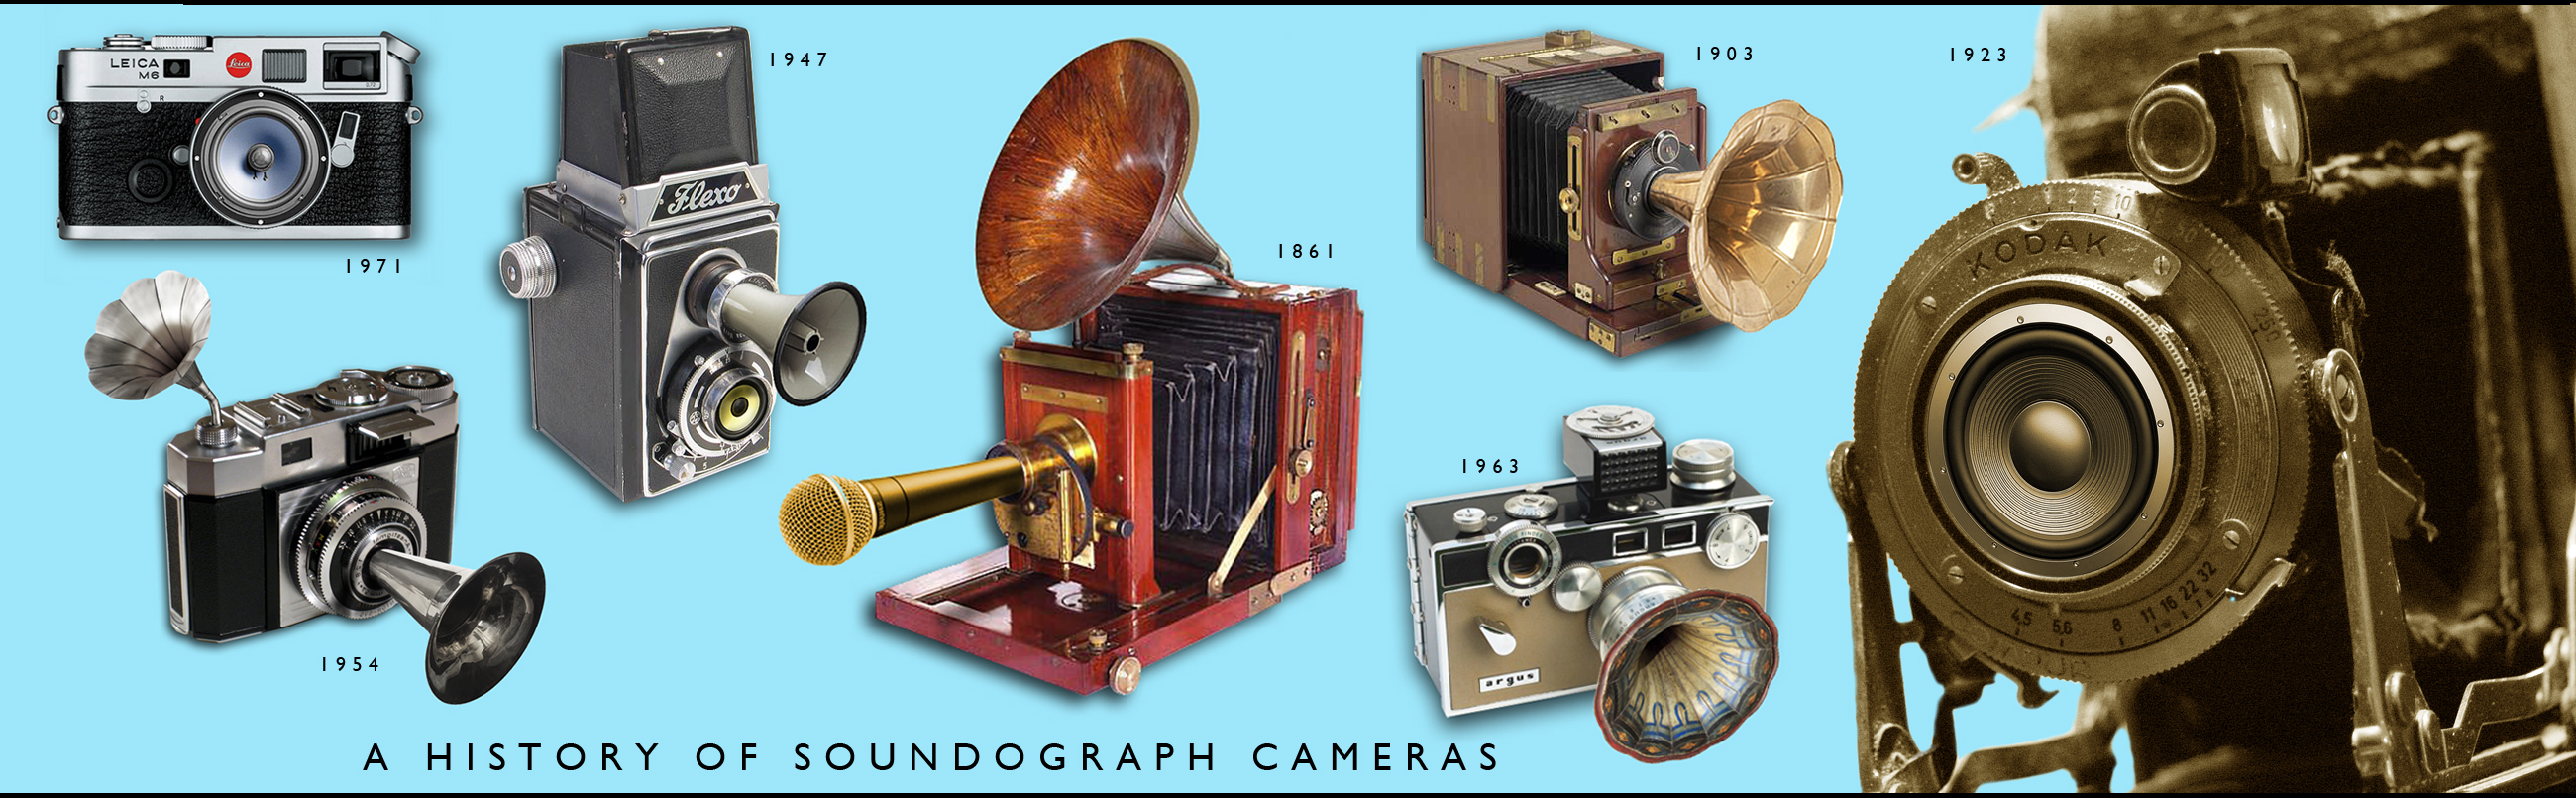 Photo of soundograph cameras.